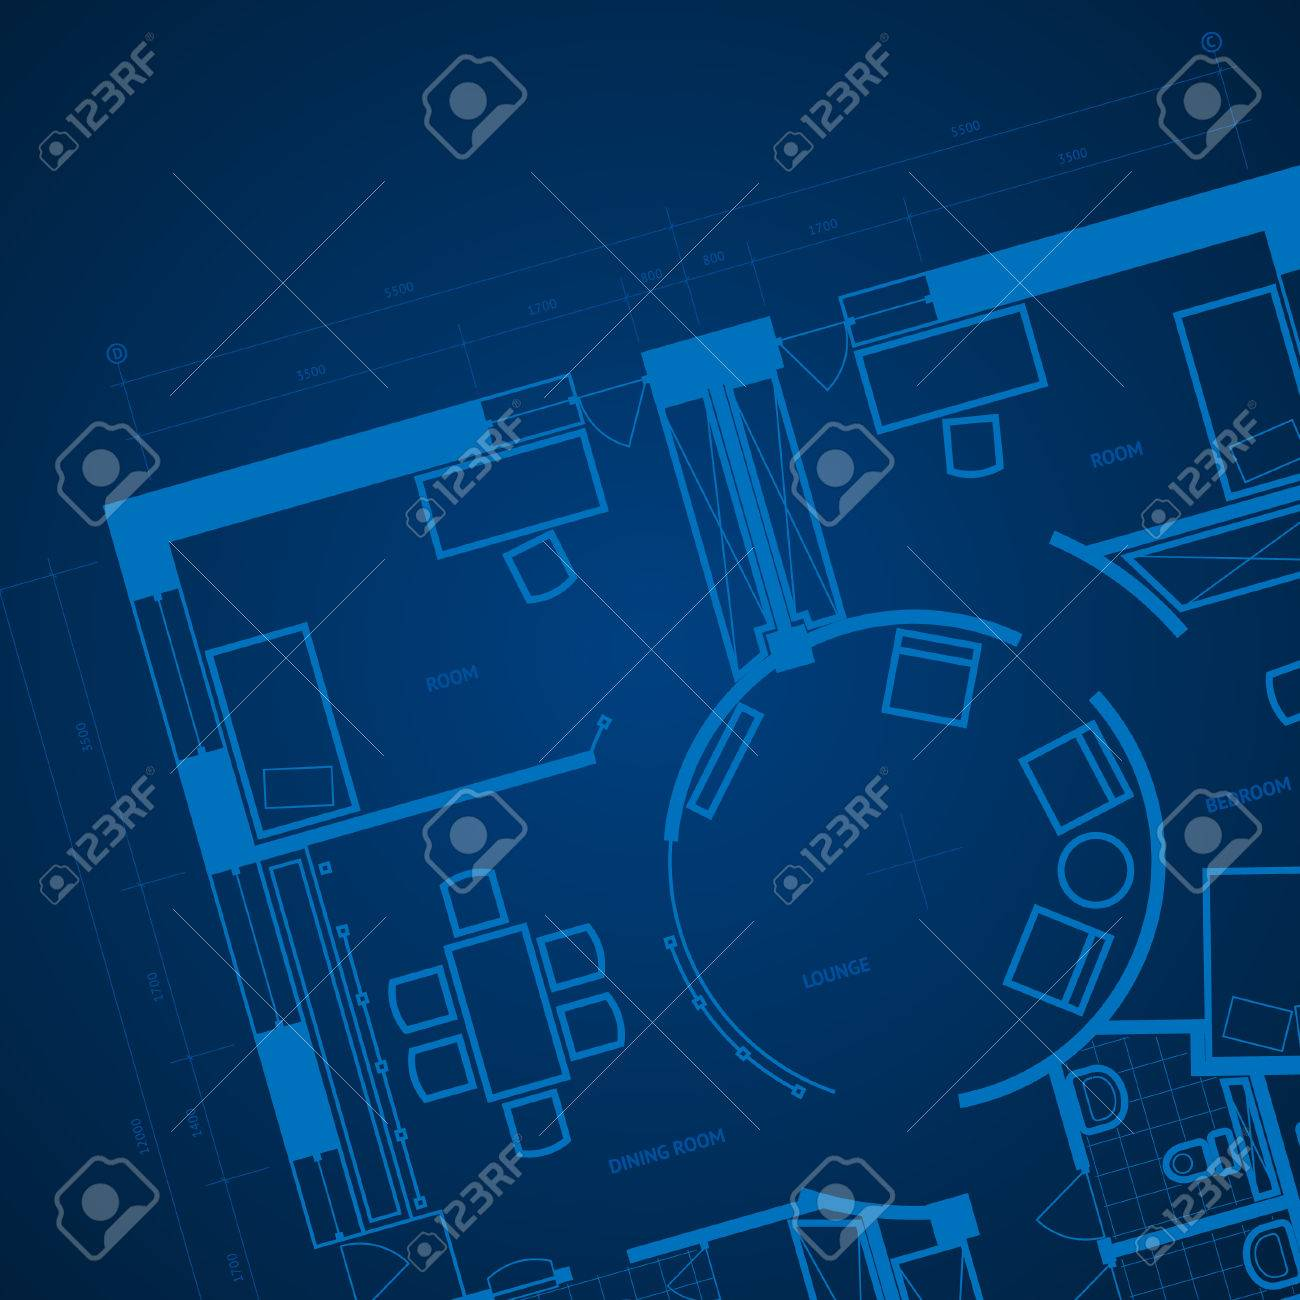 Abstract blueprint background in blue colors illustration royalty abstract blueprint background in blue colors illustration stock vector 7023411 malvernweather Choice Image